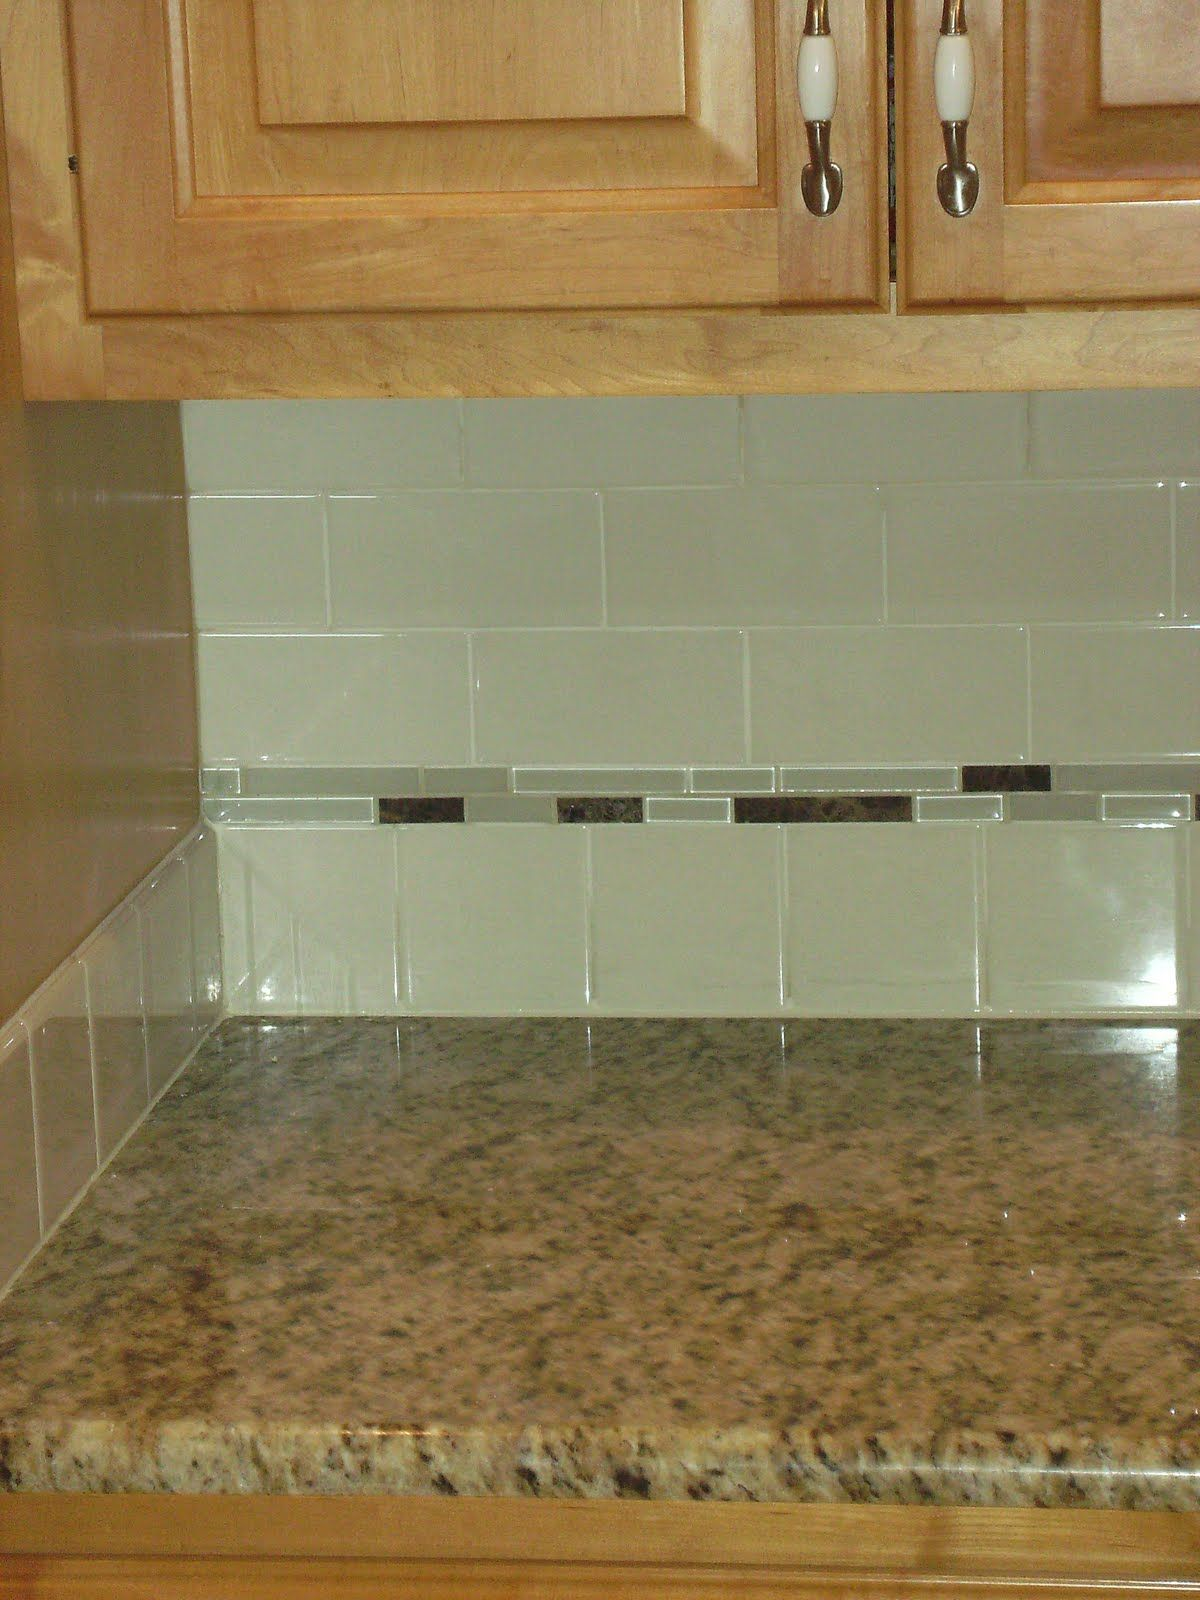 Tiles In Kitchen Green Glass Subway Tiles With Small Grey Glass Accent Tiles